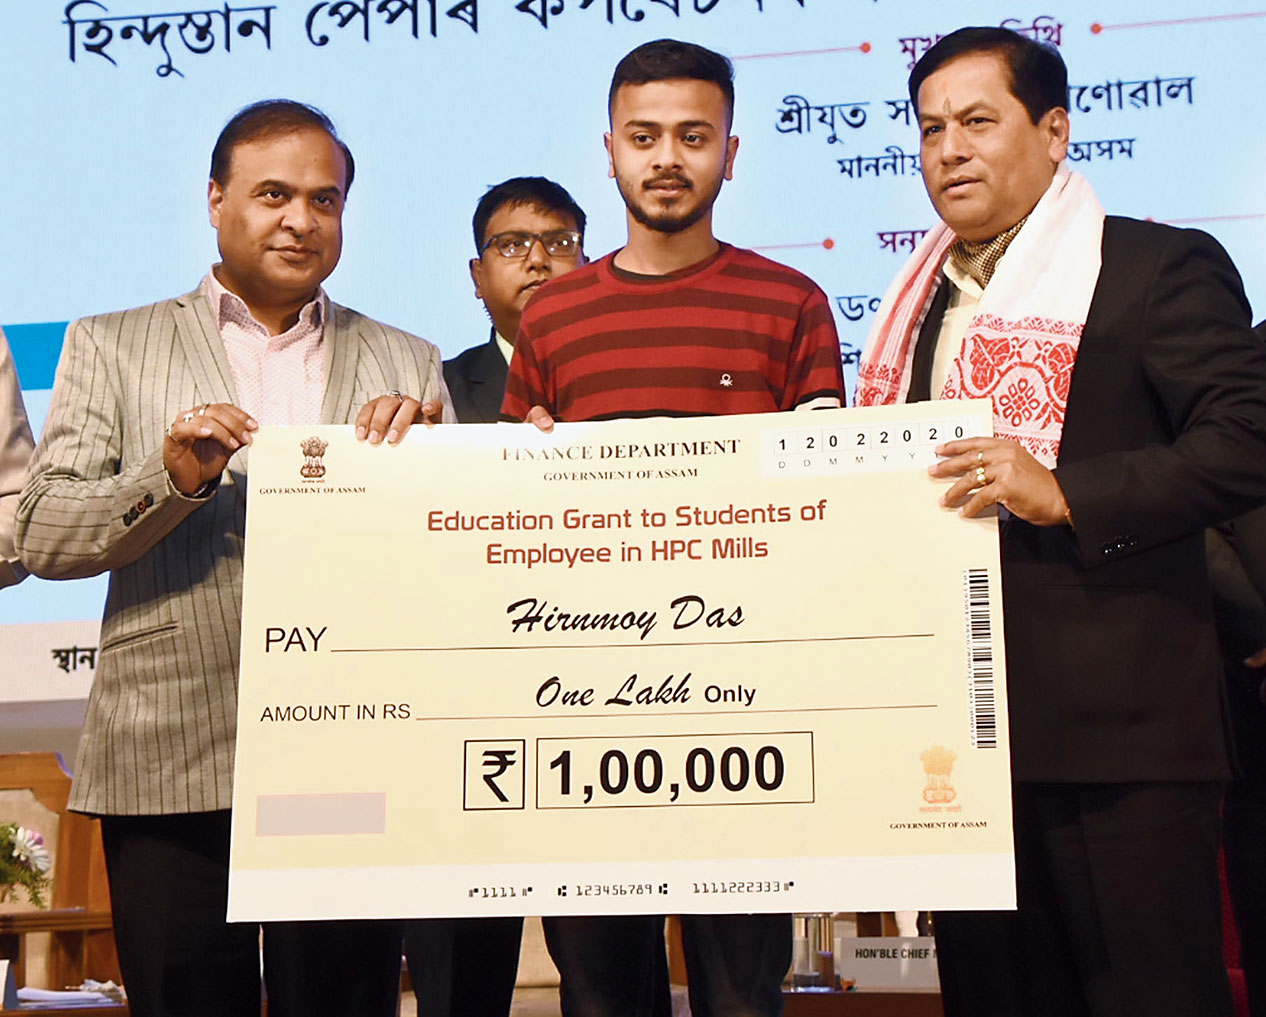 Himanta Biswa Sarma and Sarbananda Sonowal present a cheque to a student of a paper mill employee in Guwahati on Wednesday